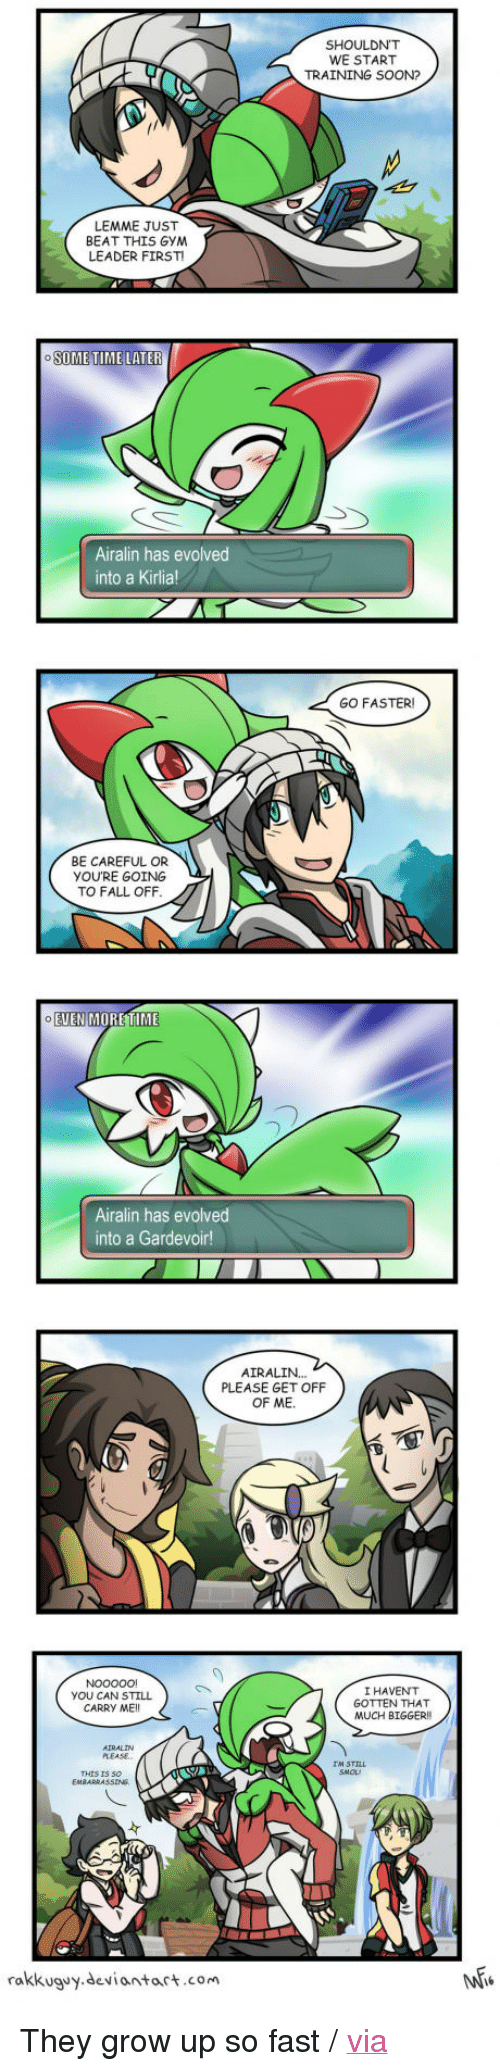 "9gag, Fall, and Gym: SHOULDN'T  WE START  TRAINING SOON?  LEMME JUST  BEAT THIS GYM  LEADER FIRST  6  Airalin has evolved  into a Kirlia  GO FASTER  BE CAREFUL OR  YOU'RE GOING  TO FALL OFF  EUEN MORETIME  Airalin has evolved  into a Gardevoir!  AIRALIN...  PLEASE GET OFF  OF ME  YOU CAN STILL  CARRY ME!!  I HAVENT  GOTTEN THAT  MUCH BIGGER  PLEASE  THIS IS So  rakkuguy.deviantart.com <p>They grow up so fast / <a href=""http://9gag.com/gag/aA1Kqpd"">via</a></p>"